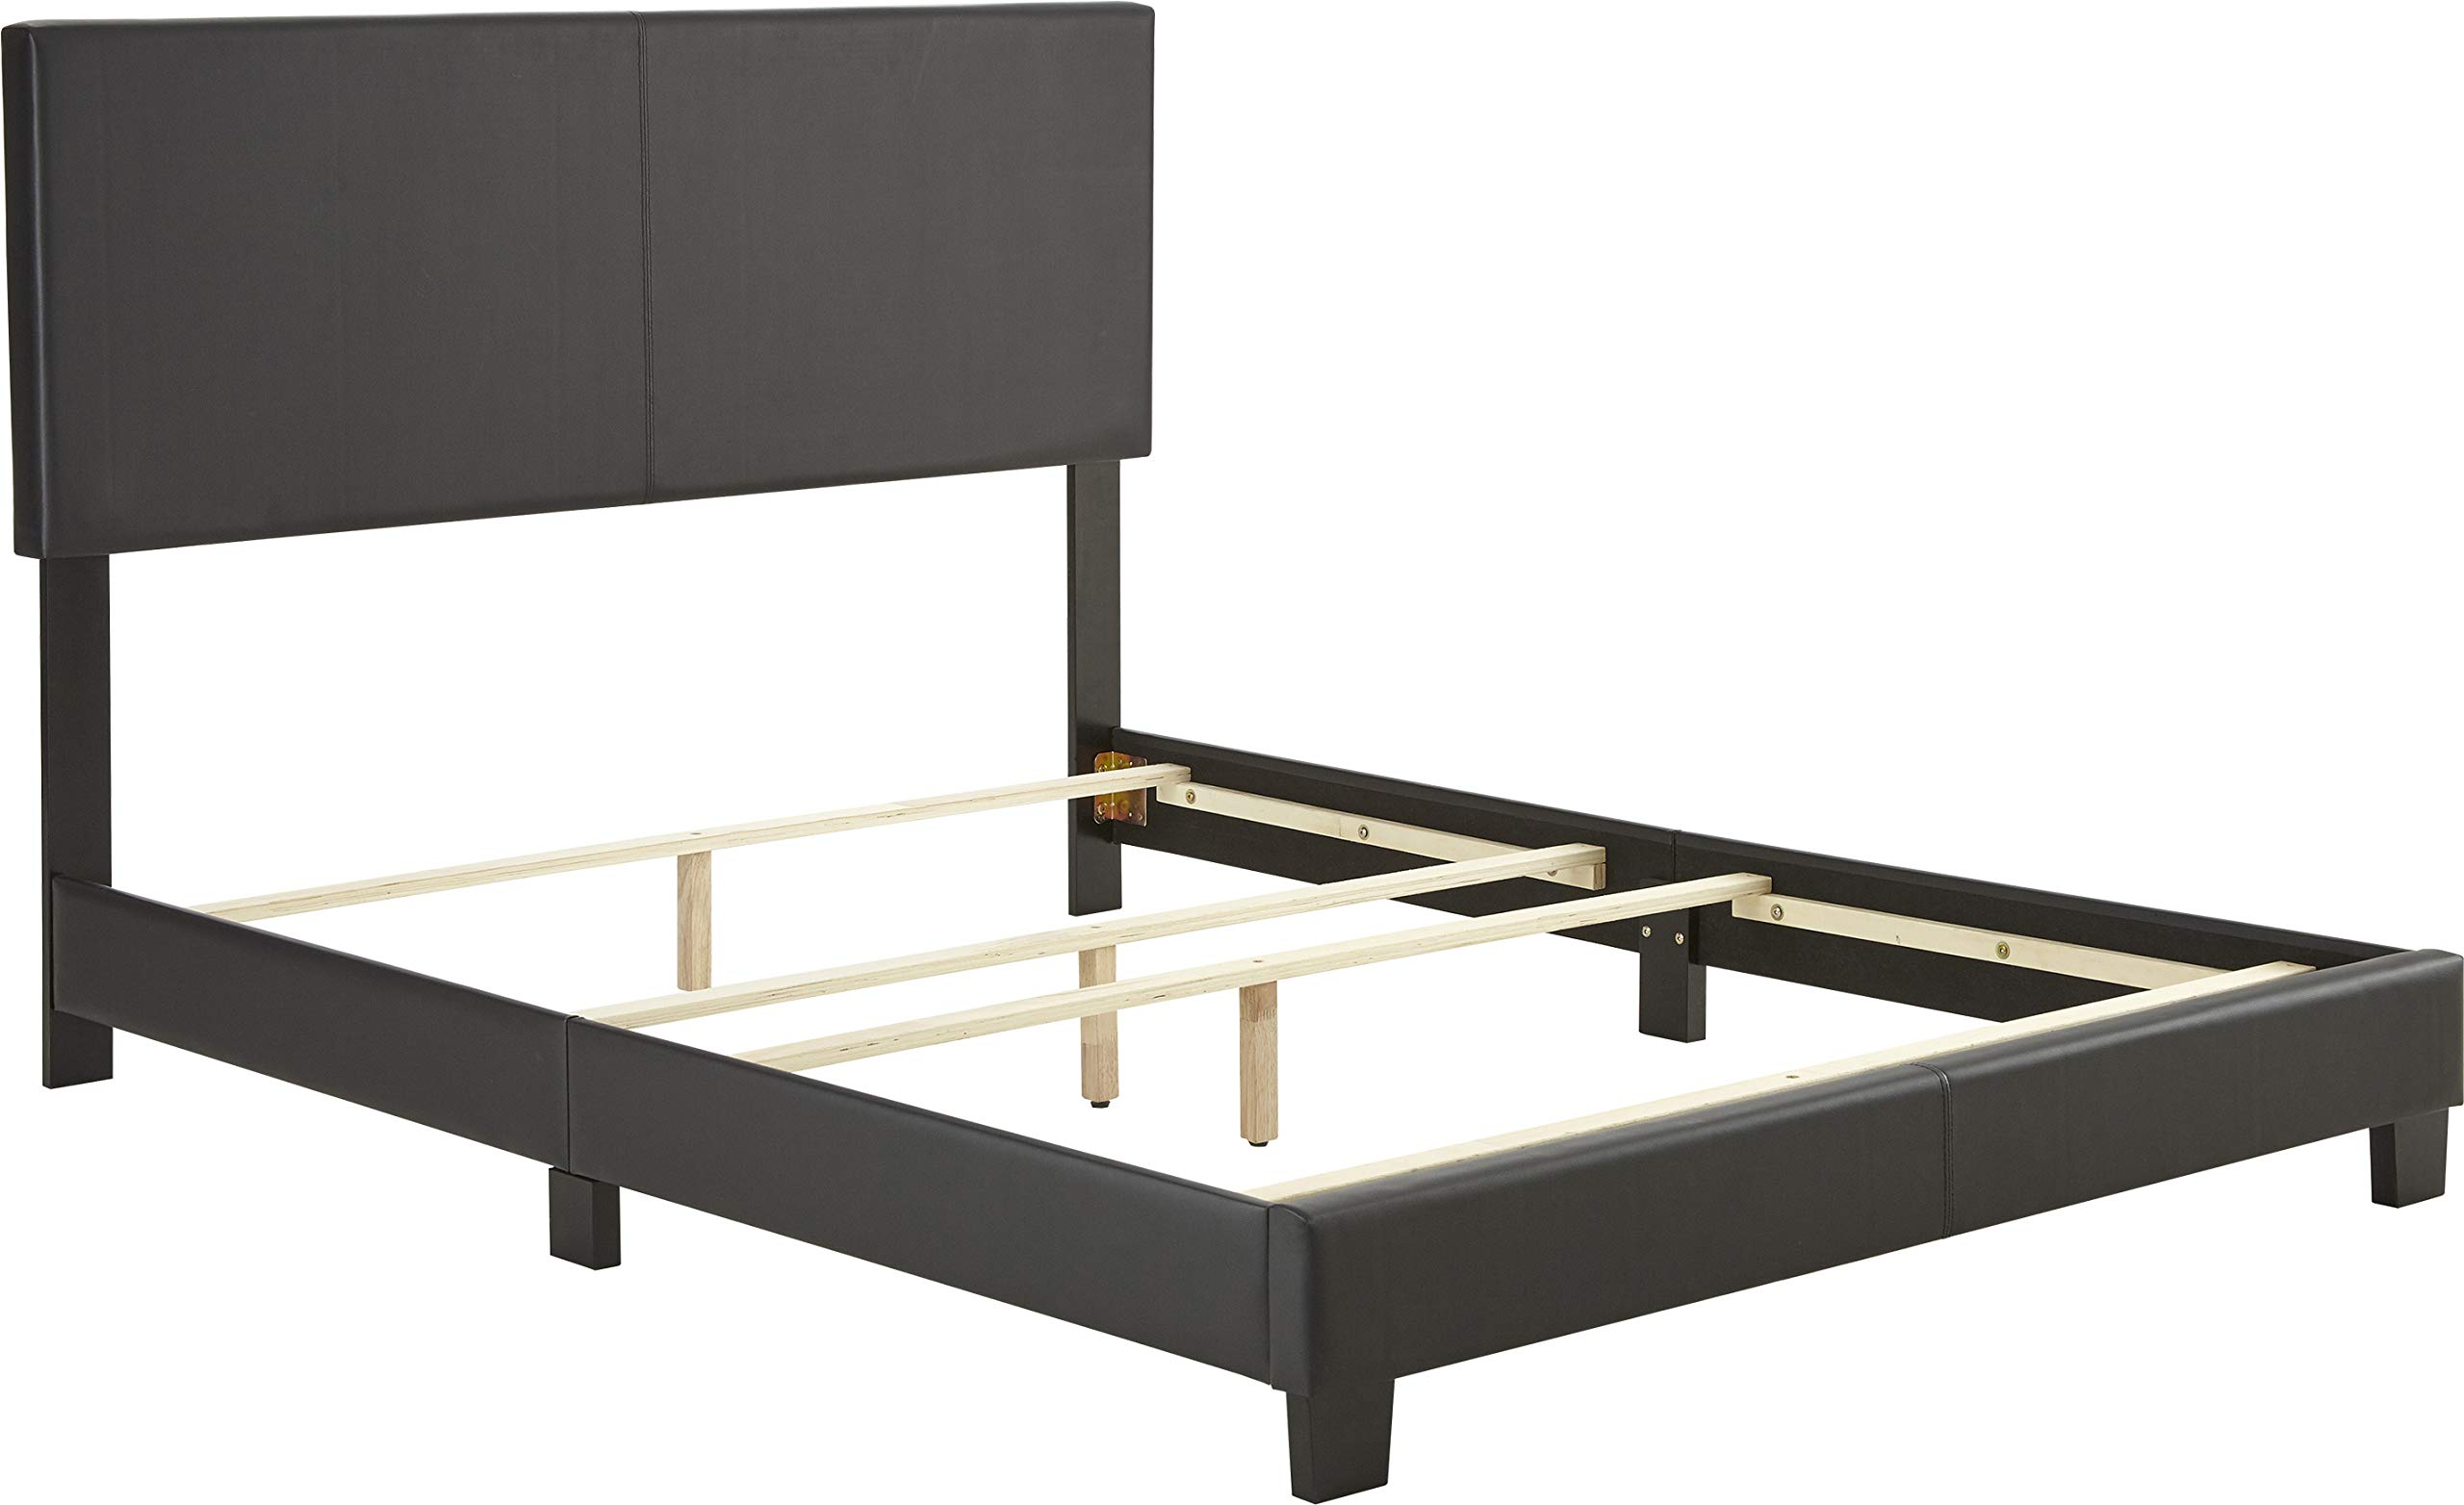 Boyd Sleep Montana Upholstered Platform Bed Frame with Headboard: Faux Leather, Black, Twin